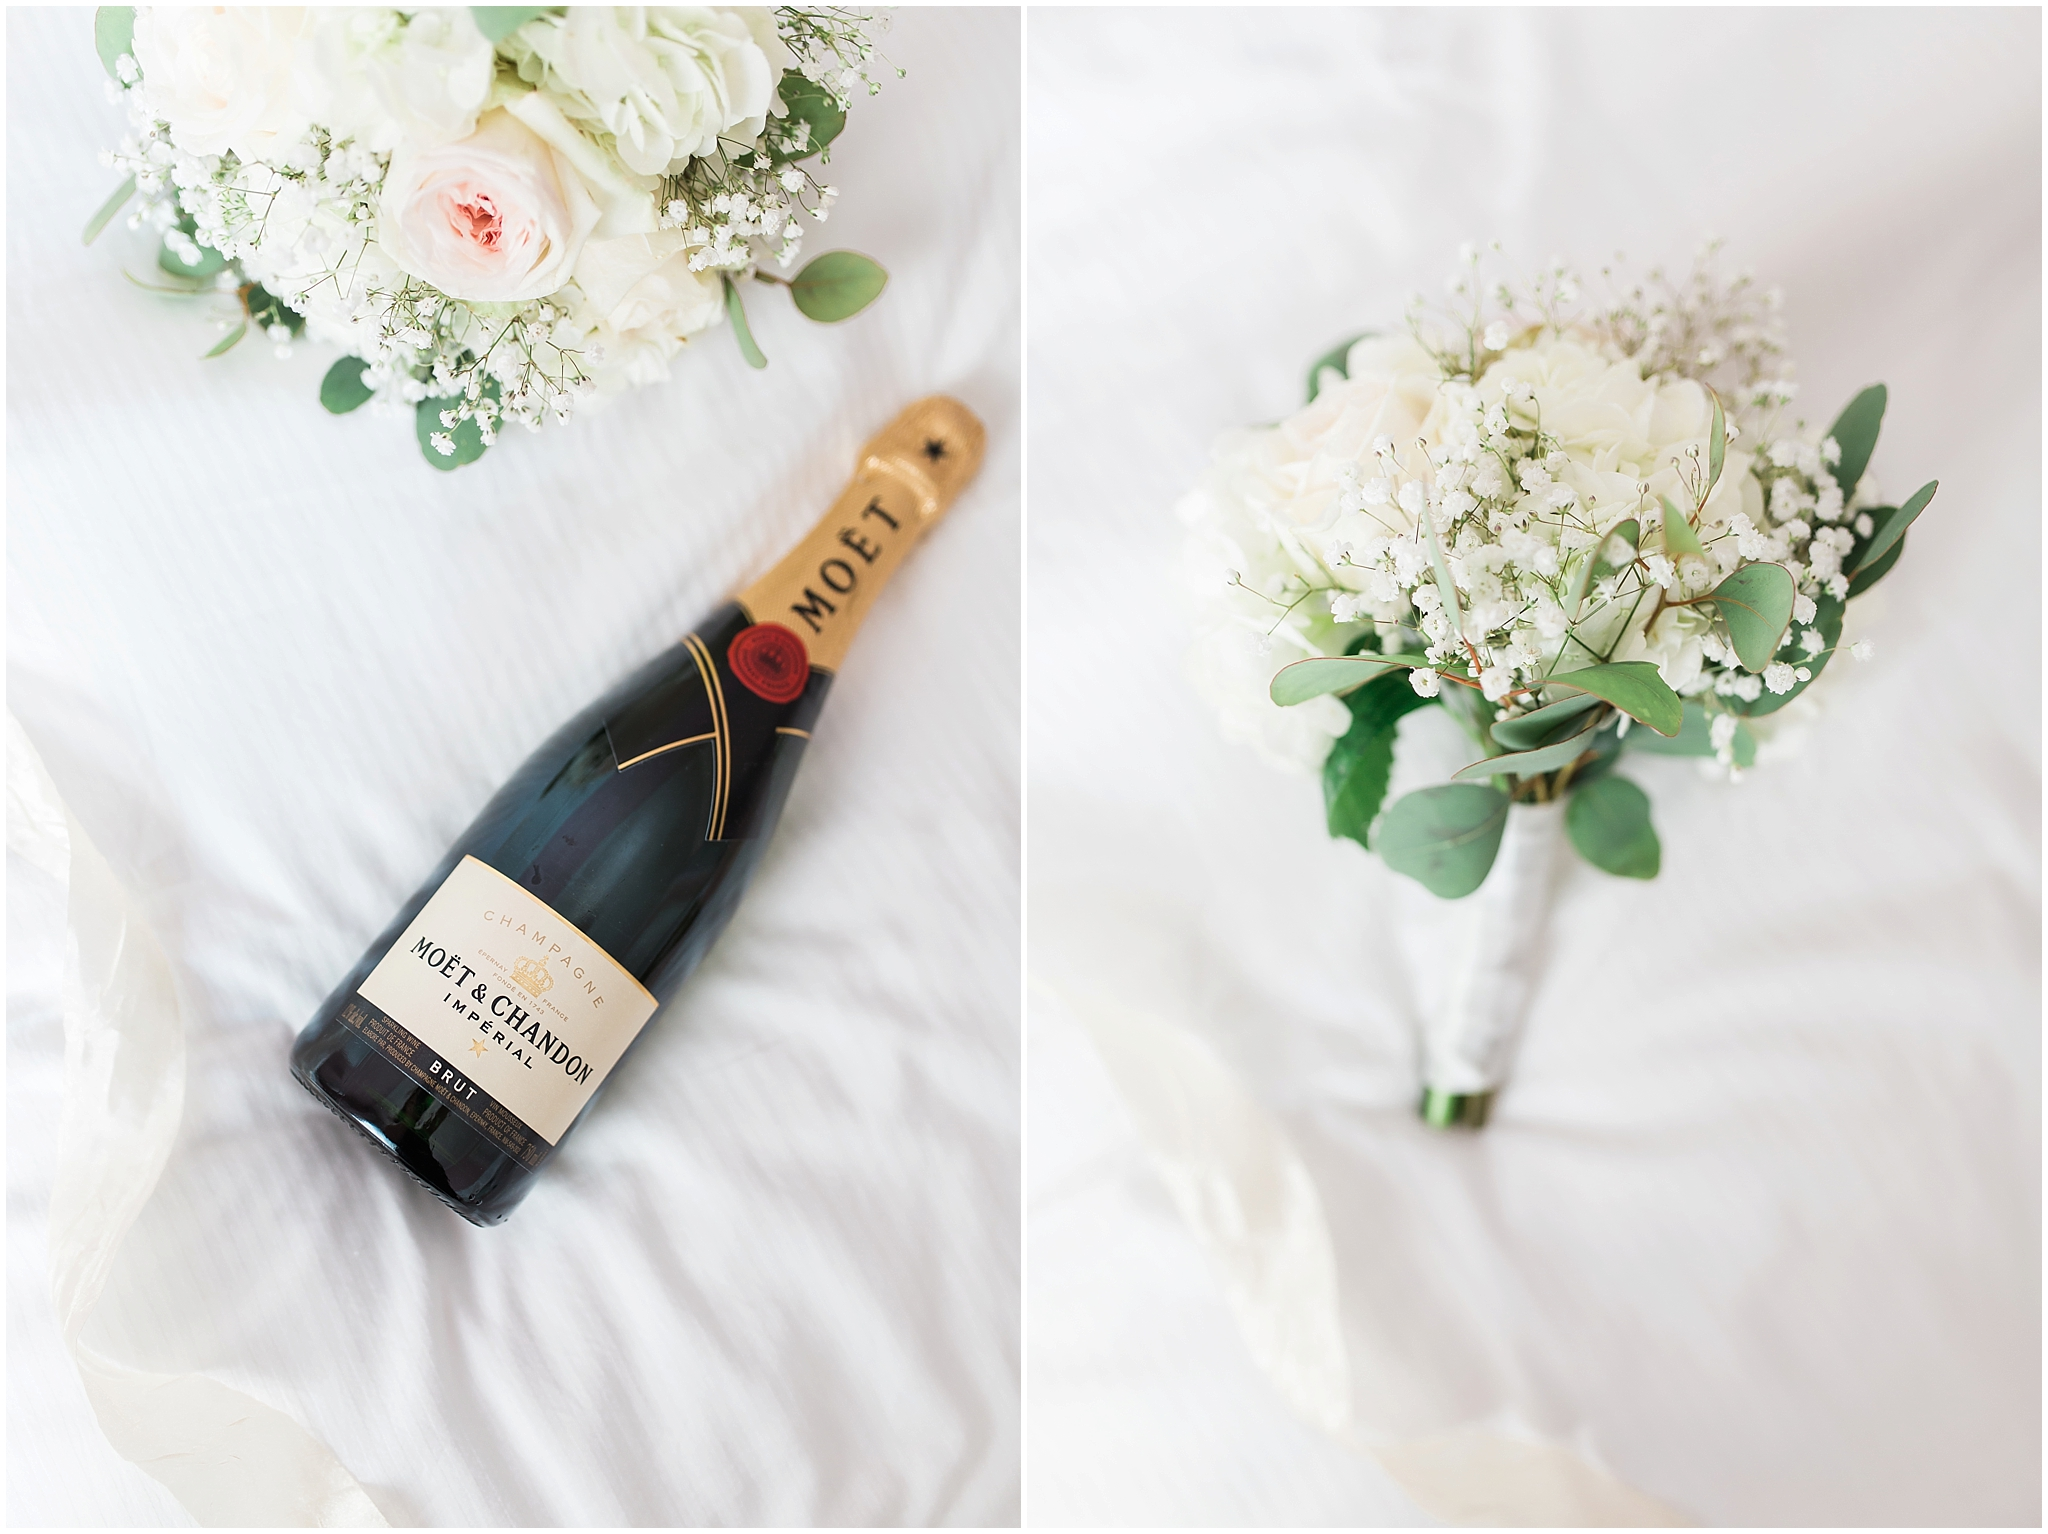 Romantic Montreal flowers and champagne